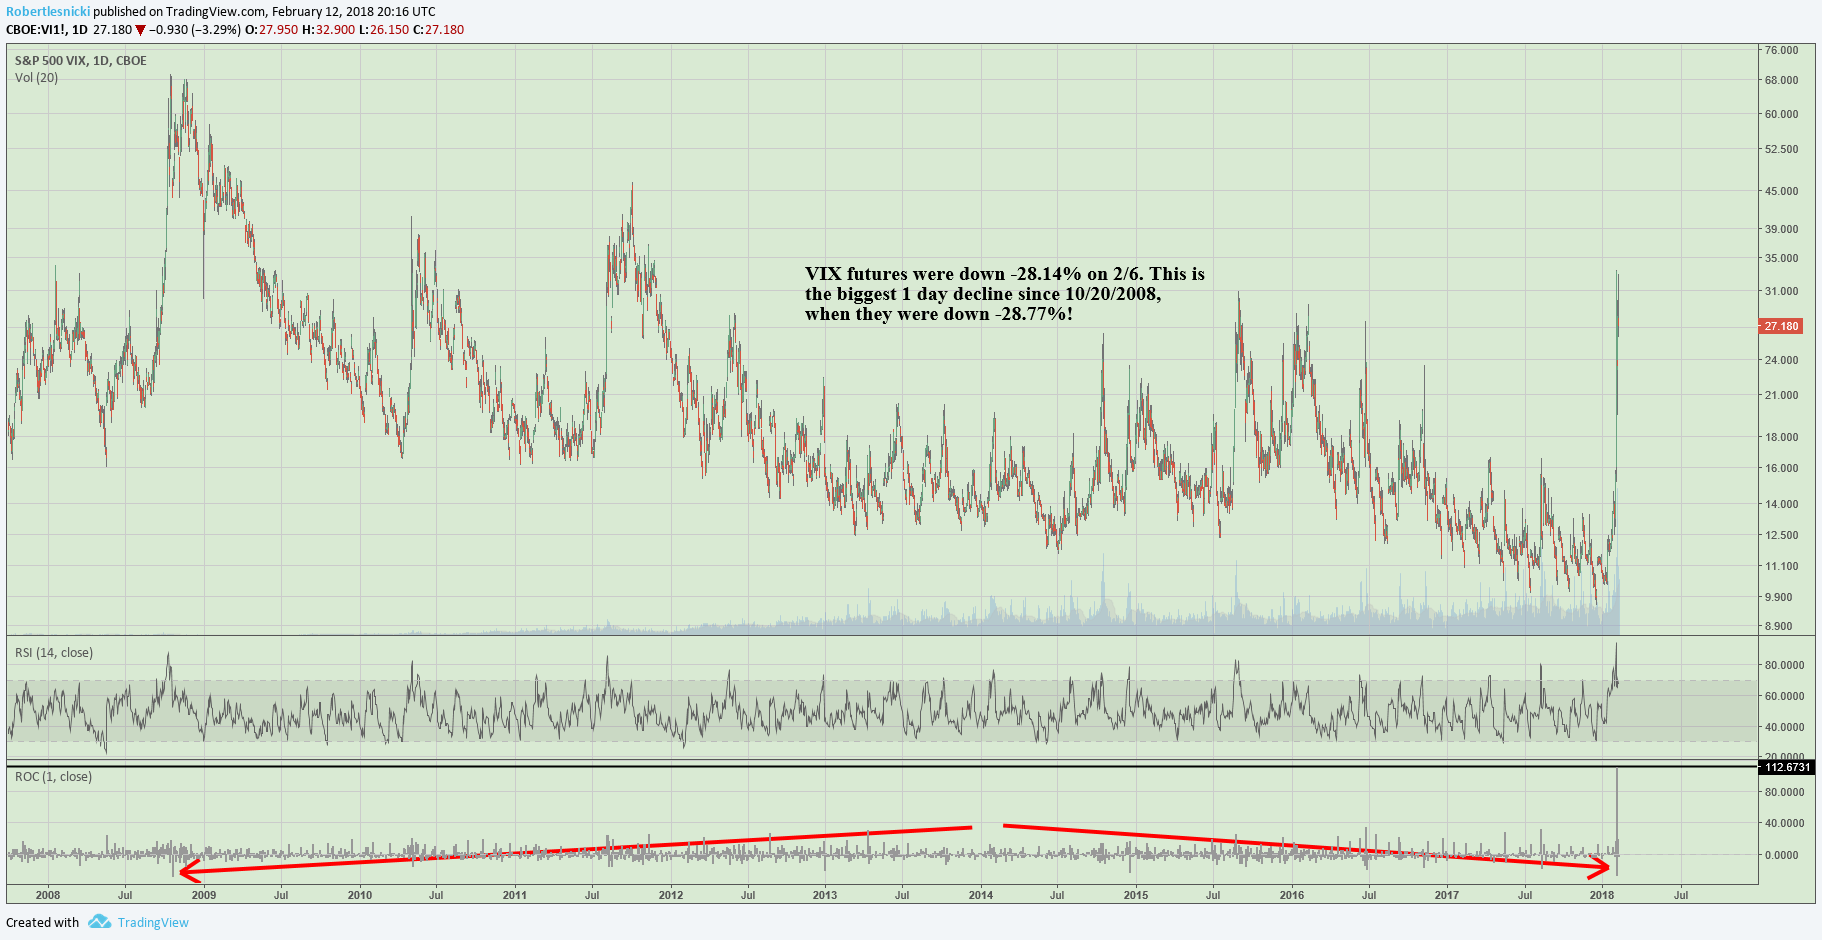 VIX futures on 2/6 saw their biggest 1 day decline (-28.14%) since the financial crisis (-28.77%).